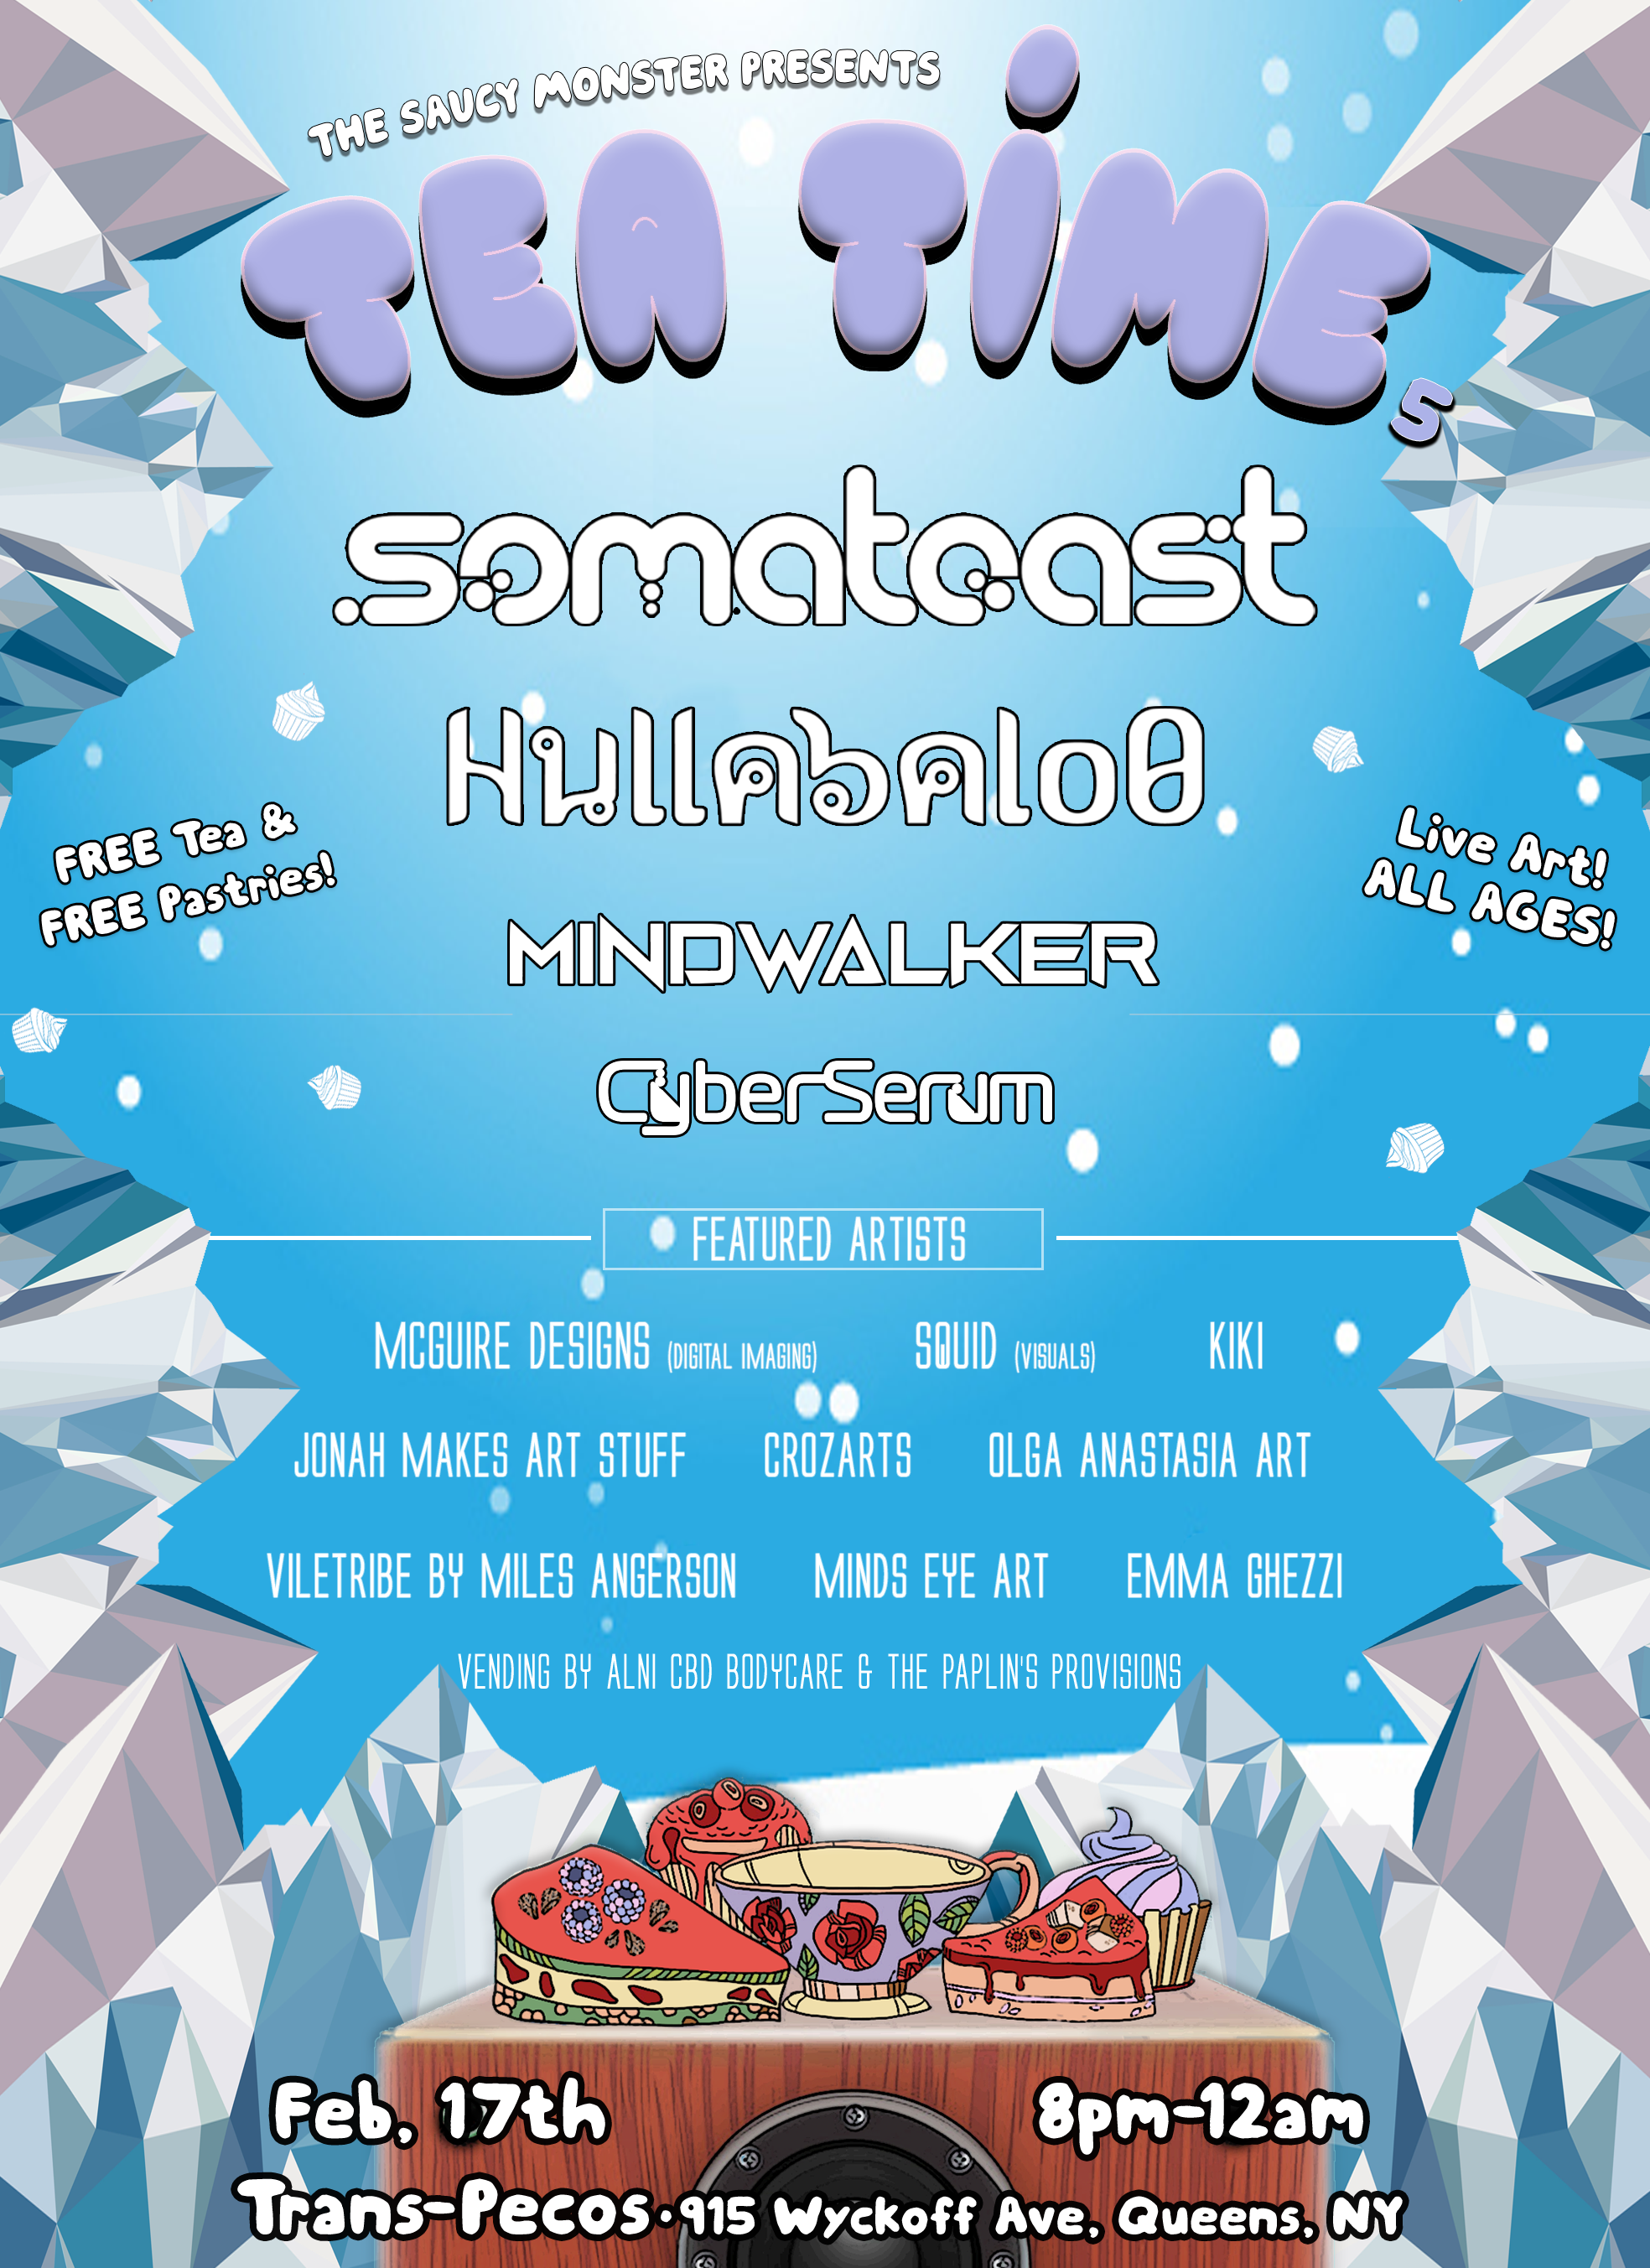 Tea Time is back but this time on a WEEKEND! The bar is back in action and we'll be working on a special drink deal for the evening🍷🍺 A perfect for your pre-game! We got a stacked lineup and jam packed artist roster for this one featuring:   Somatoast   https://soundcloud.com/somatoast    Hullabalo0   https://soundcloud.com/hullabalo0    MINDWALKER   https://soundcloud.com/mindwalkerbeats    CyberSerum   https://soundcloud.com/cyberserum   Live Artists: @squidtotheword [Visuals]  McGuire Designs [Digital Imaging] KiKi SuSS  Jonah Makes Artstuff   CROZ arts   VILE TRIBE by Miles Angerson   Olga Marie Anastasia Art   Minds eye by Ashkey Marie   Emma Ghezzi   Vending by  Alni CBD Body Care & The Paplin's Provisions